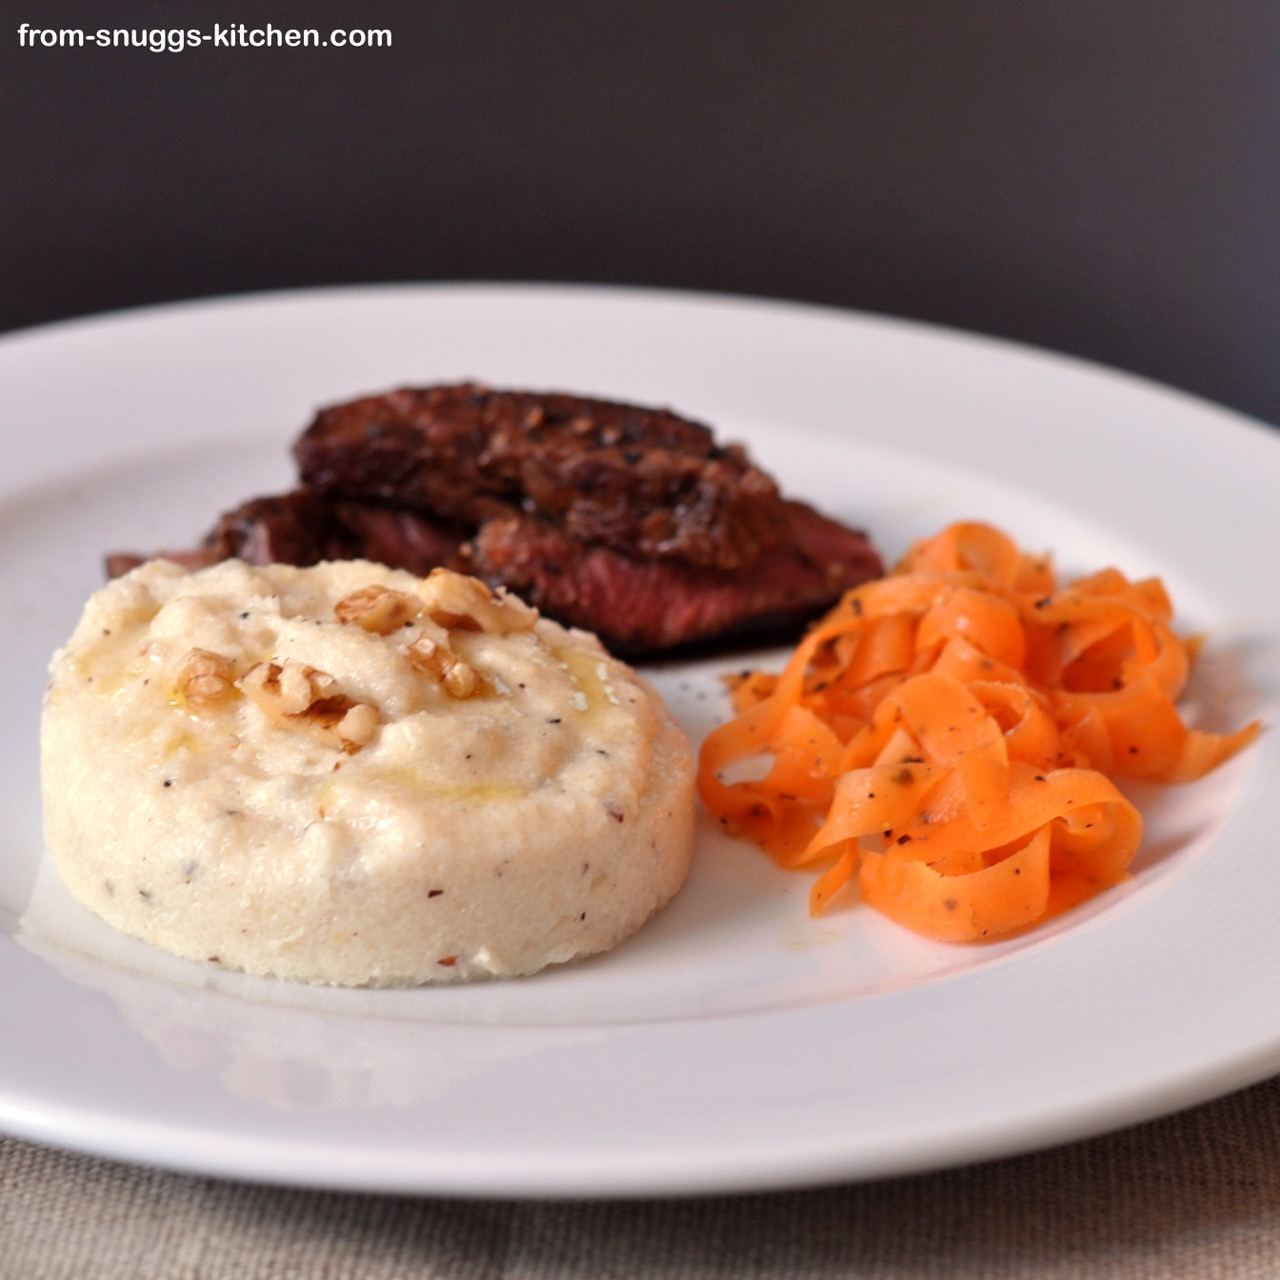 parmesan walnut polenta, honey-pepper carrot and beef tenderloin with balsamic vinegar